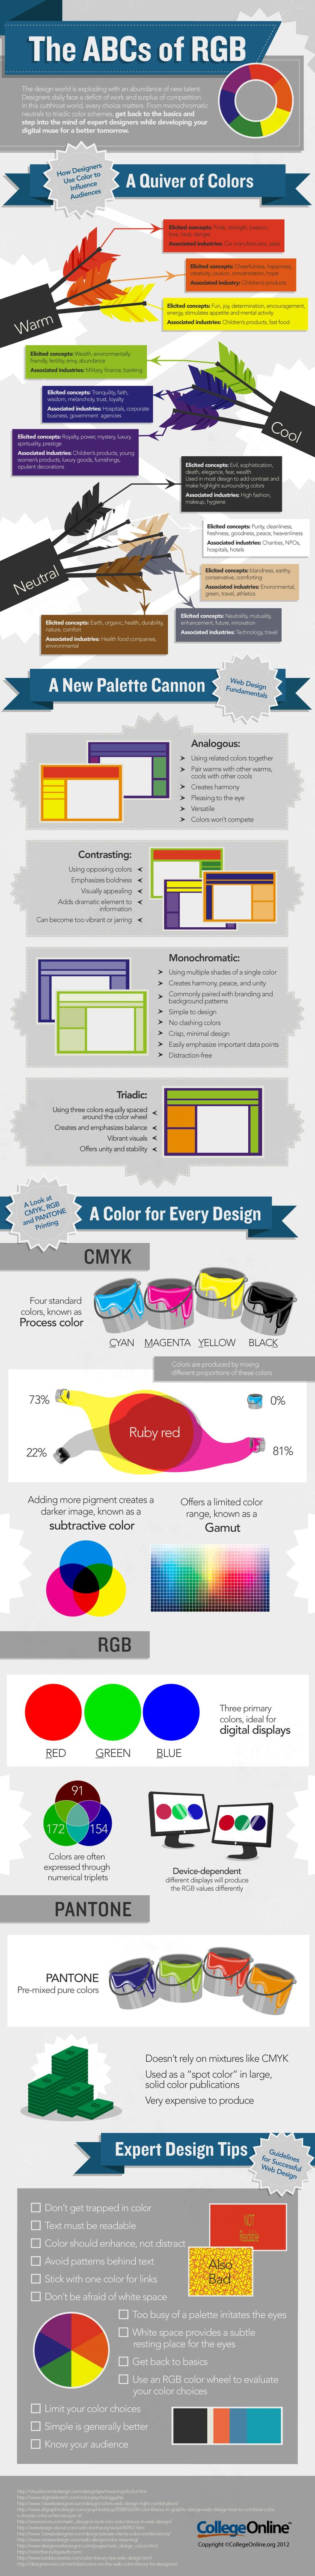 Color theory online games - Color Theory And The Meaning Behind Color Design Essentials